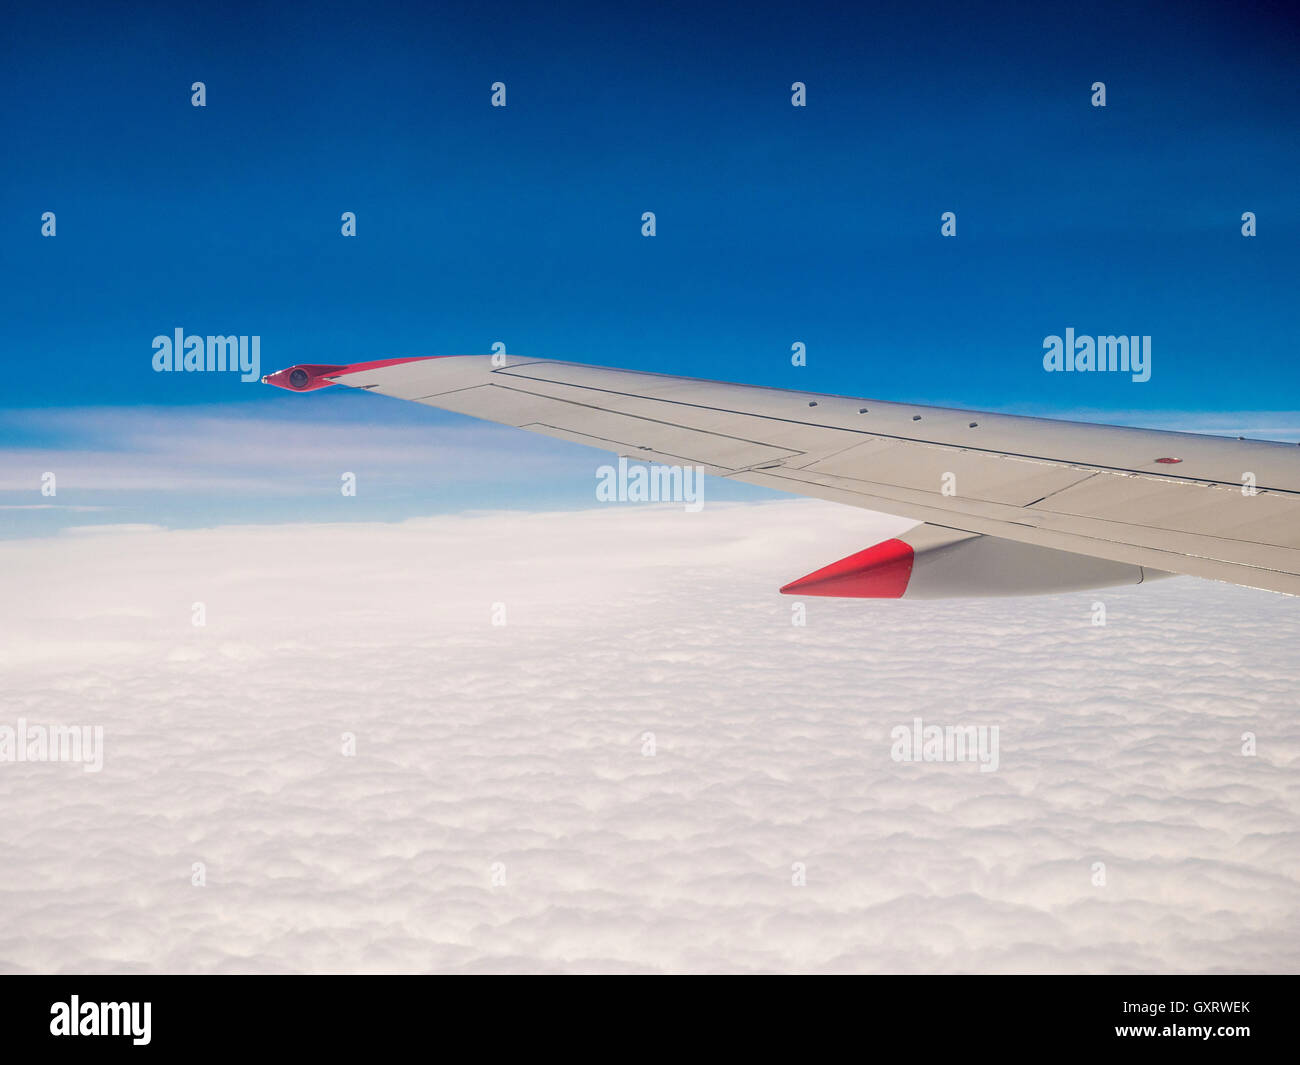 View through plane window with wing and clouds - Stock Image